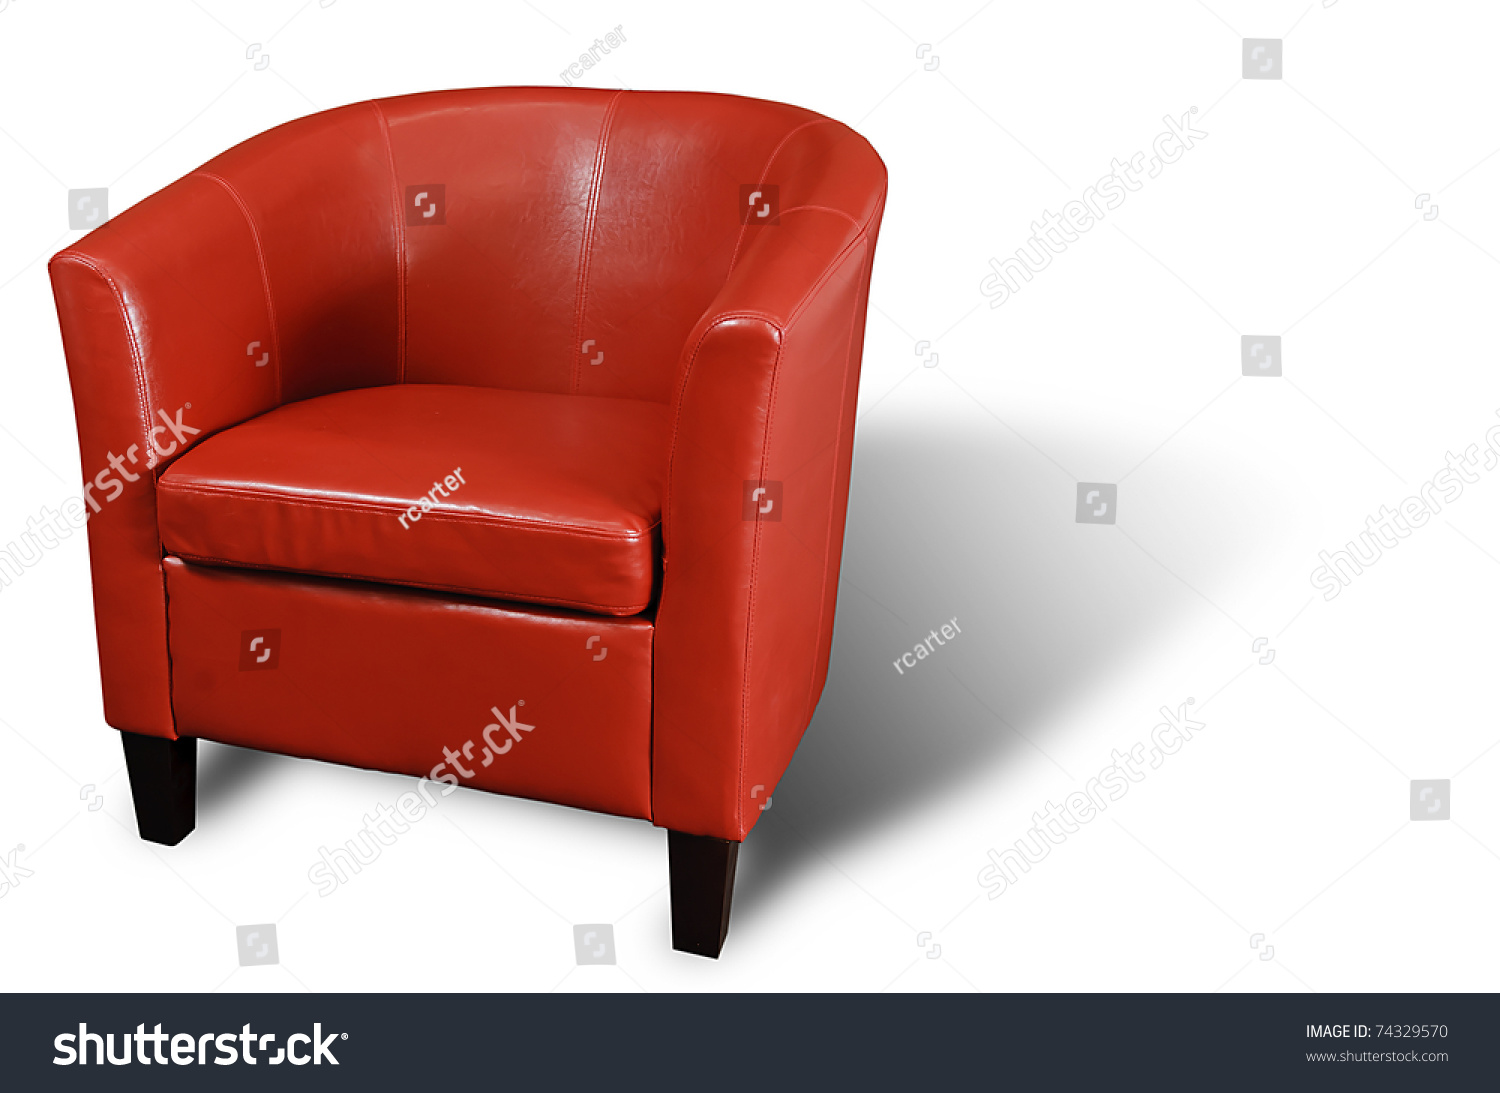 Bright Red Leather Armchair Isolated On White With A Drop Shadow.